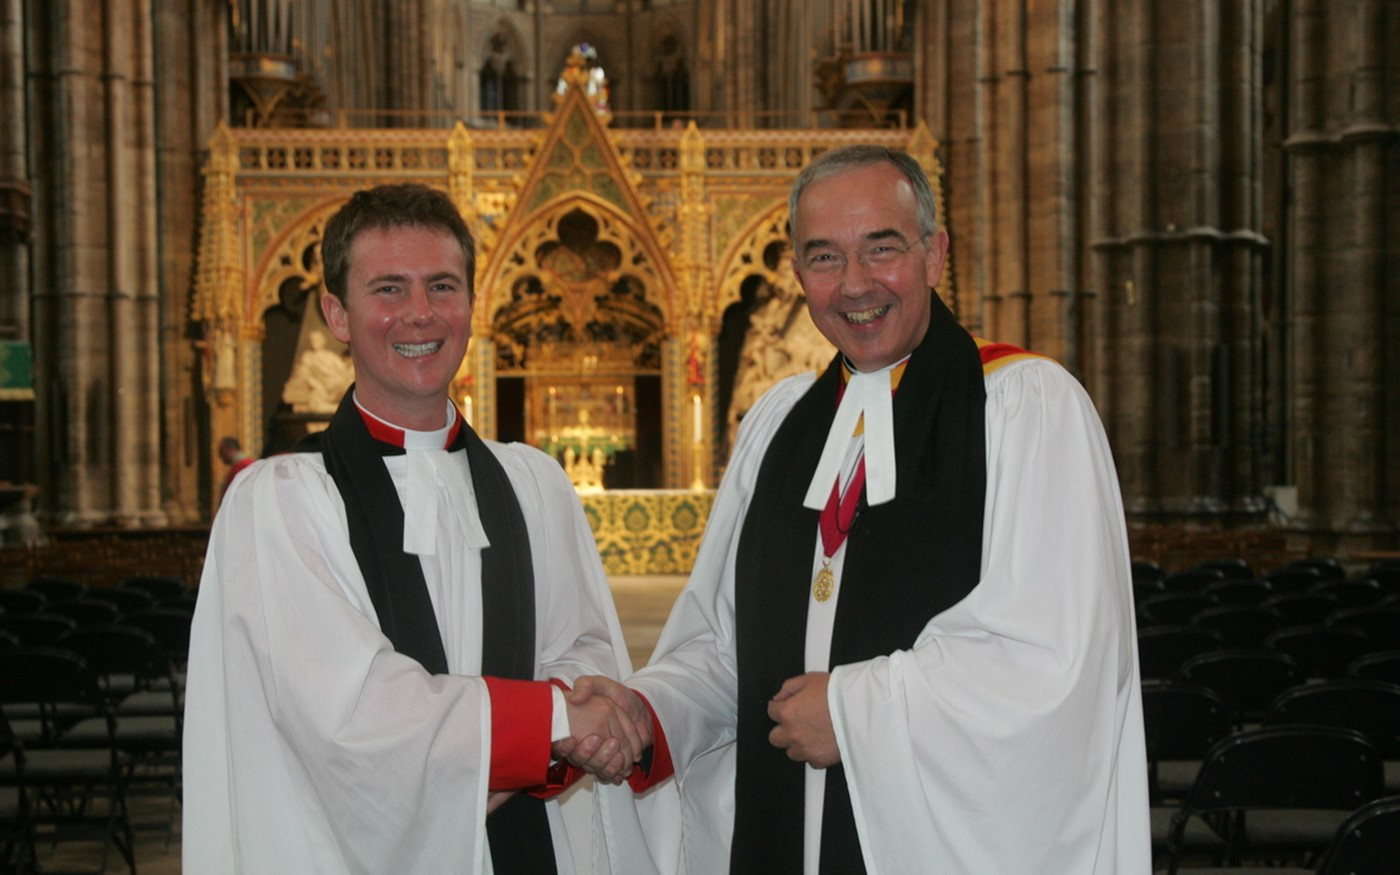 Newly appointed Minor Canon, the Reverend Dr James Hawkey with the The Very Reverend Dr John Hall, Dean of Westminster